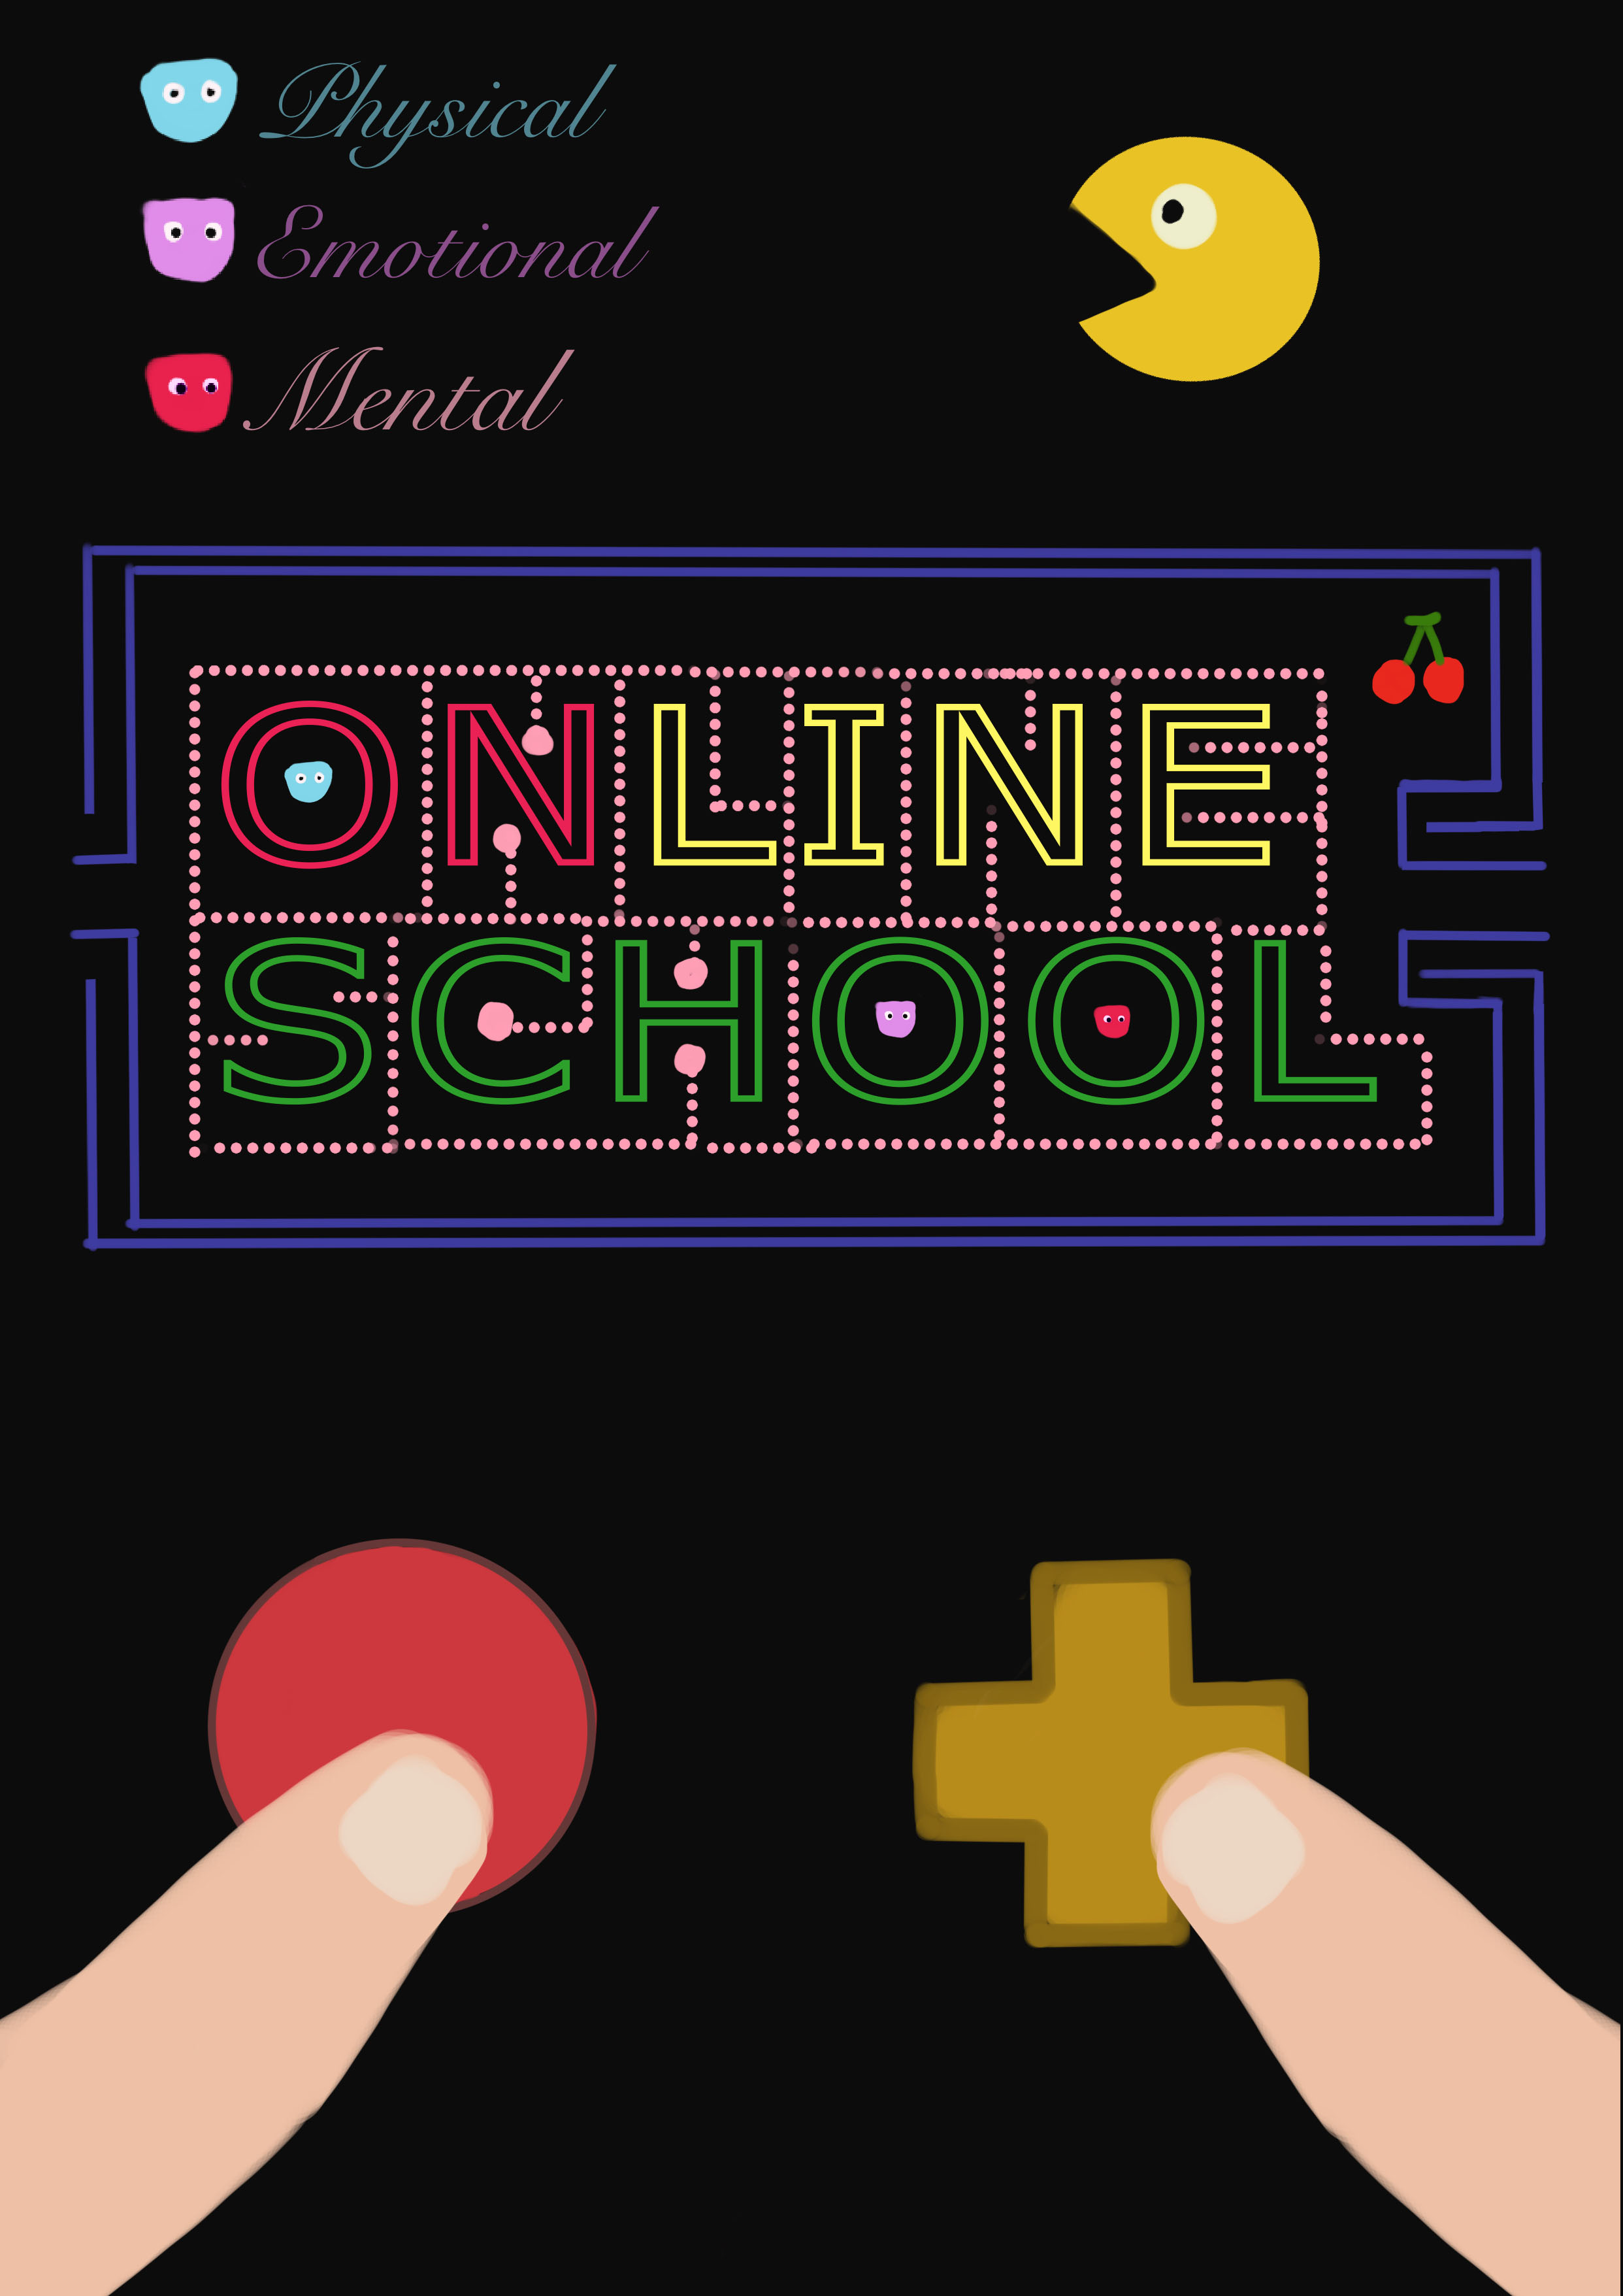 Decorative image reminiscent of pac-man video game graphics and two fingers pressing gameboy buttons, with the text Physical, Emotional, Mental, Online School